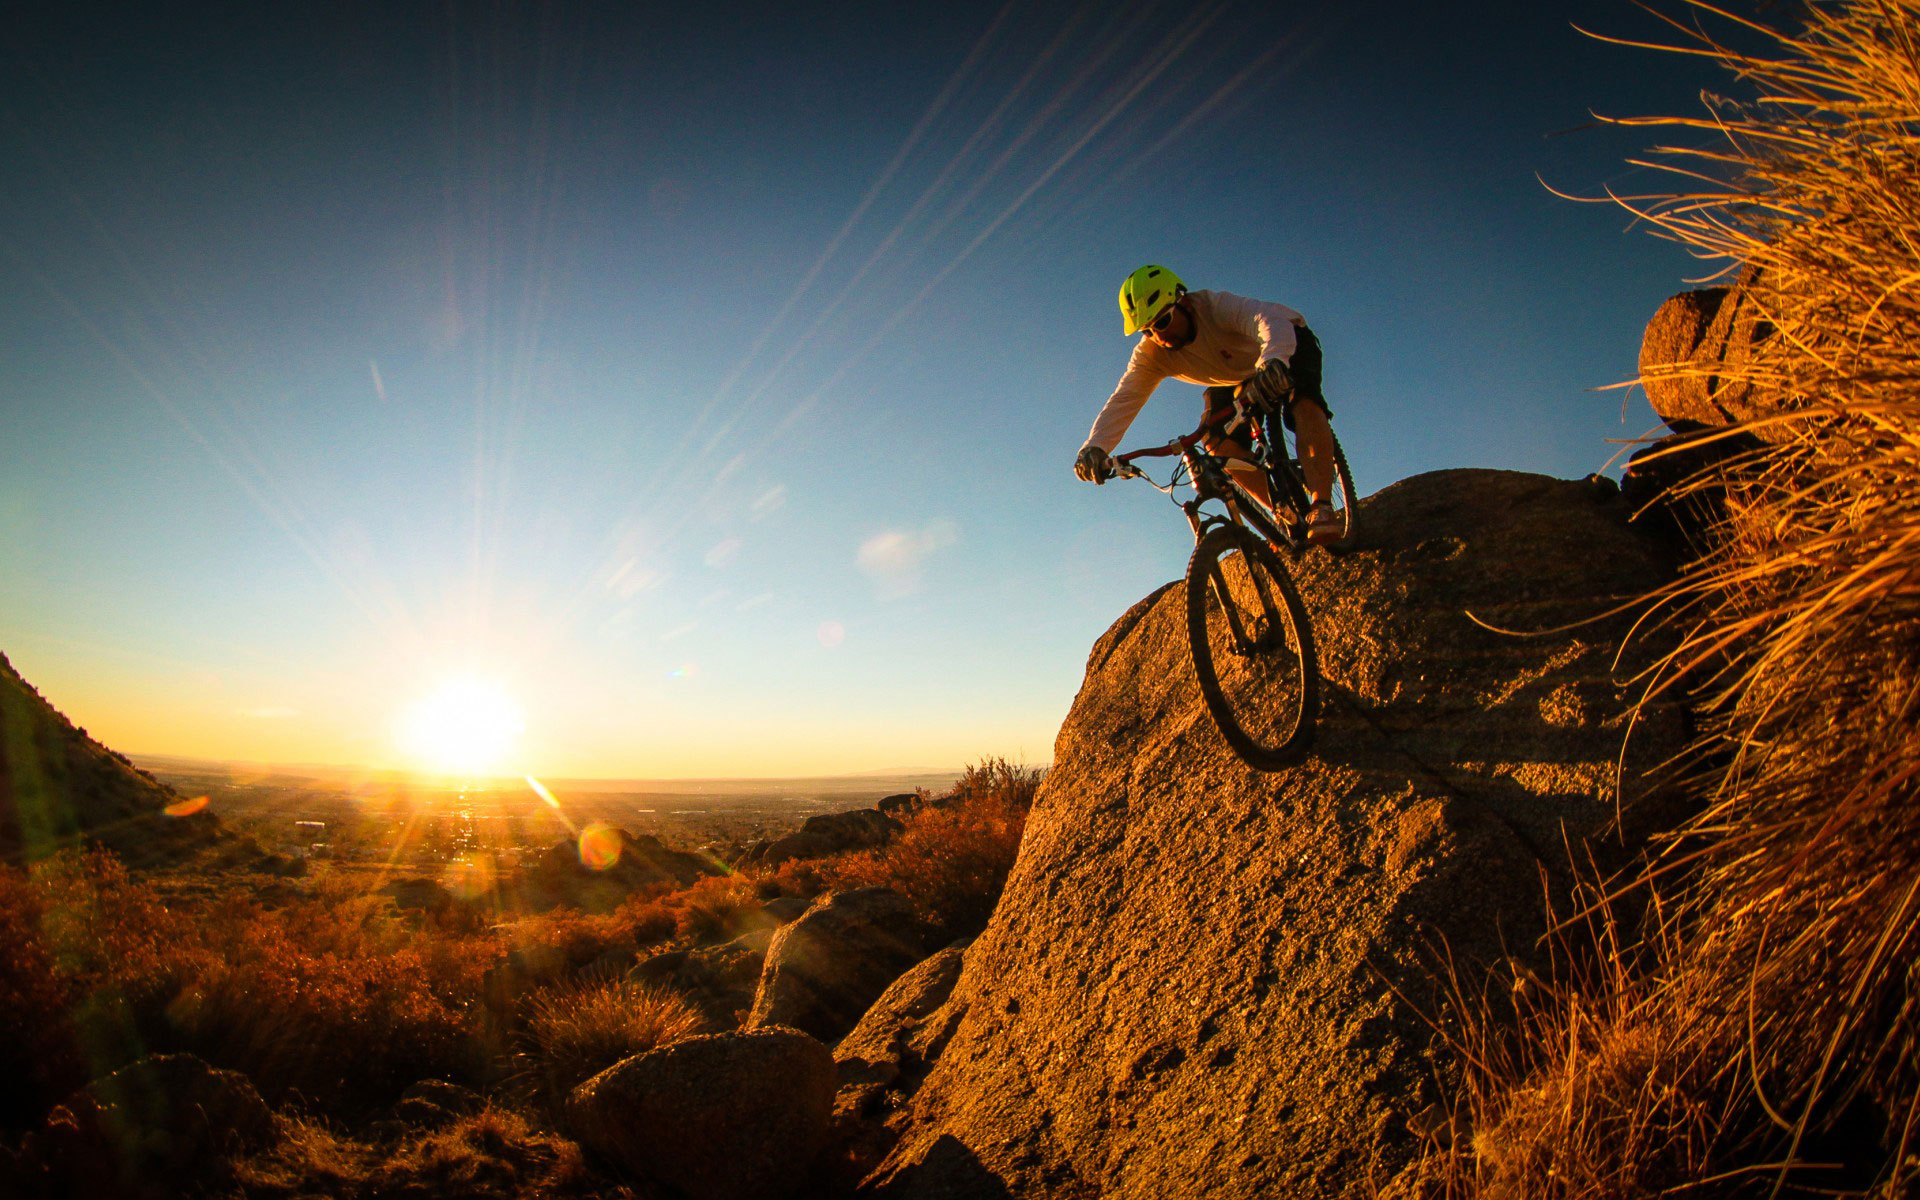 Mountain-Bike-wallpaper-4.jpeg